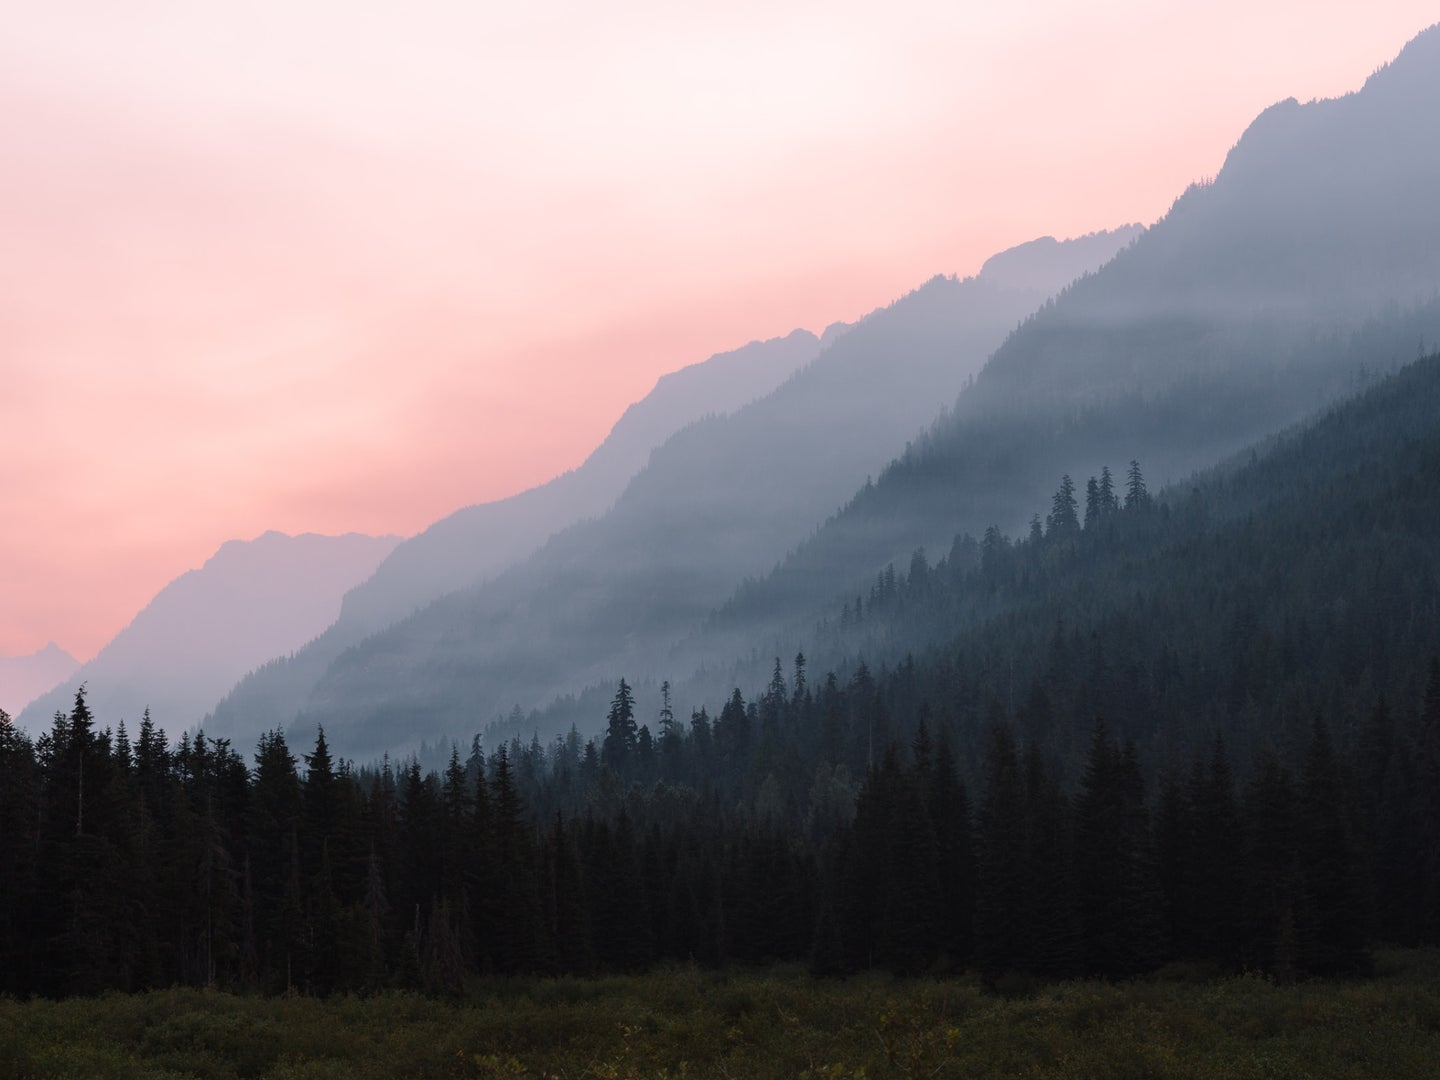 Mountains and a pine forest covered in wildfire smoke.